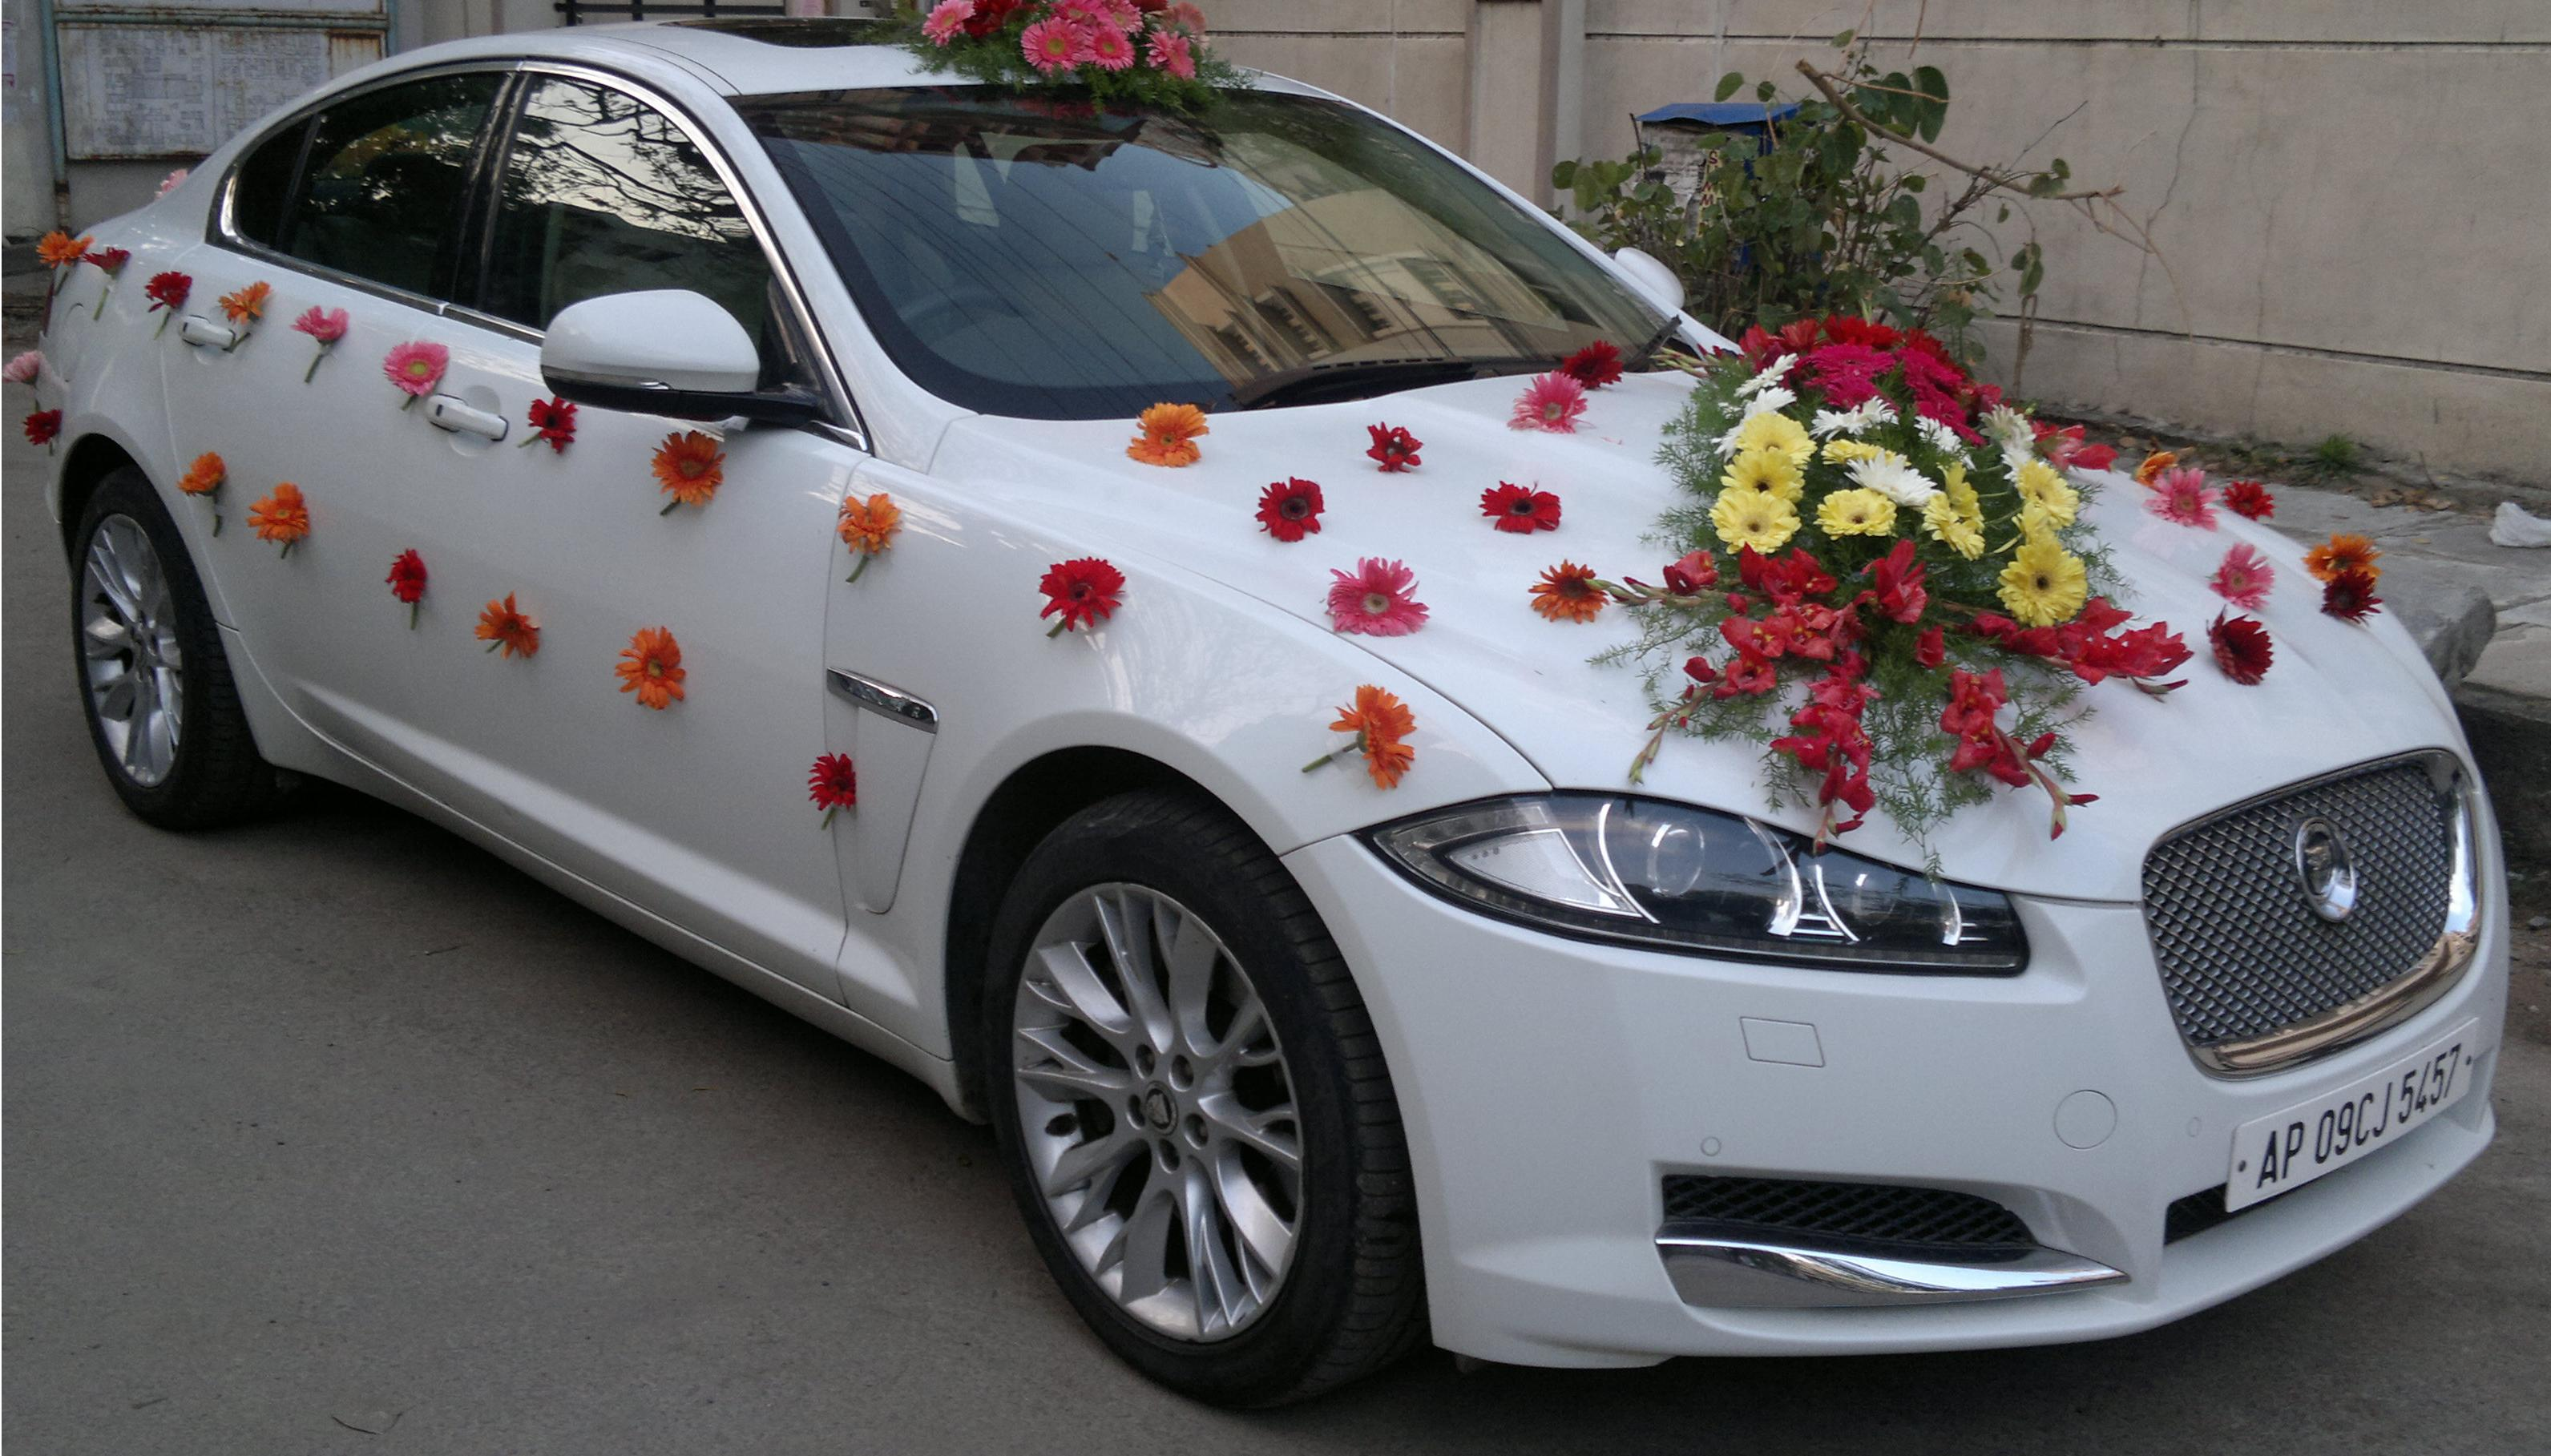 Wedding cars gallery wedding events wedding car travels wedding cars gallery wedding events wedding car travels decorated cars for wedding junglespirit Choice Image